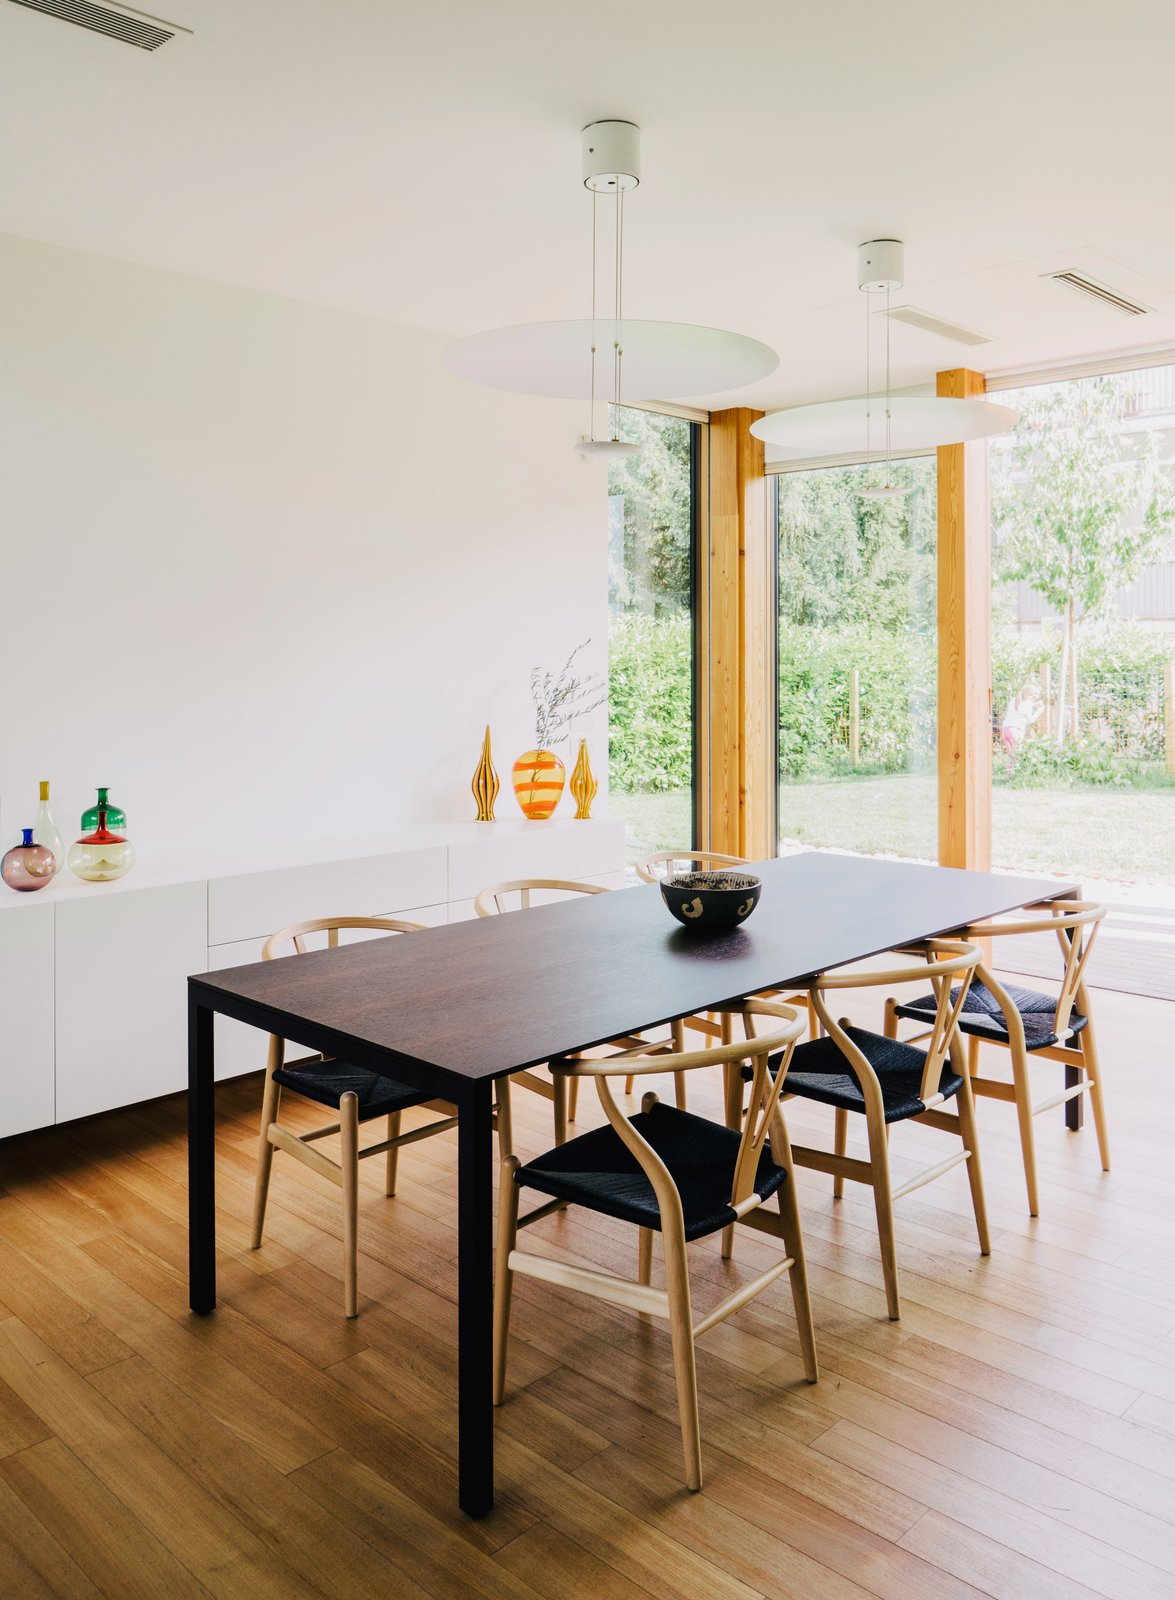 In the dining room, Wishbone chairs by Hans J. Wegner surround a 195 Naan table by Piero Lissoni. Tagged: Dining Room, Table, Storage, Chair, Medium Hardwood Floor, and Pendant Lighting.  Photo 5 of 8 in Could You Share Your Dream Home?